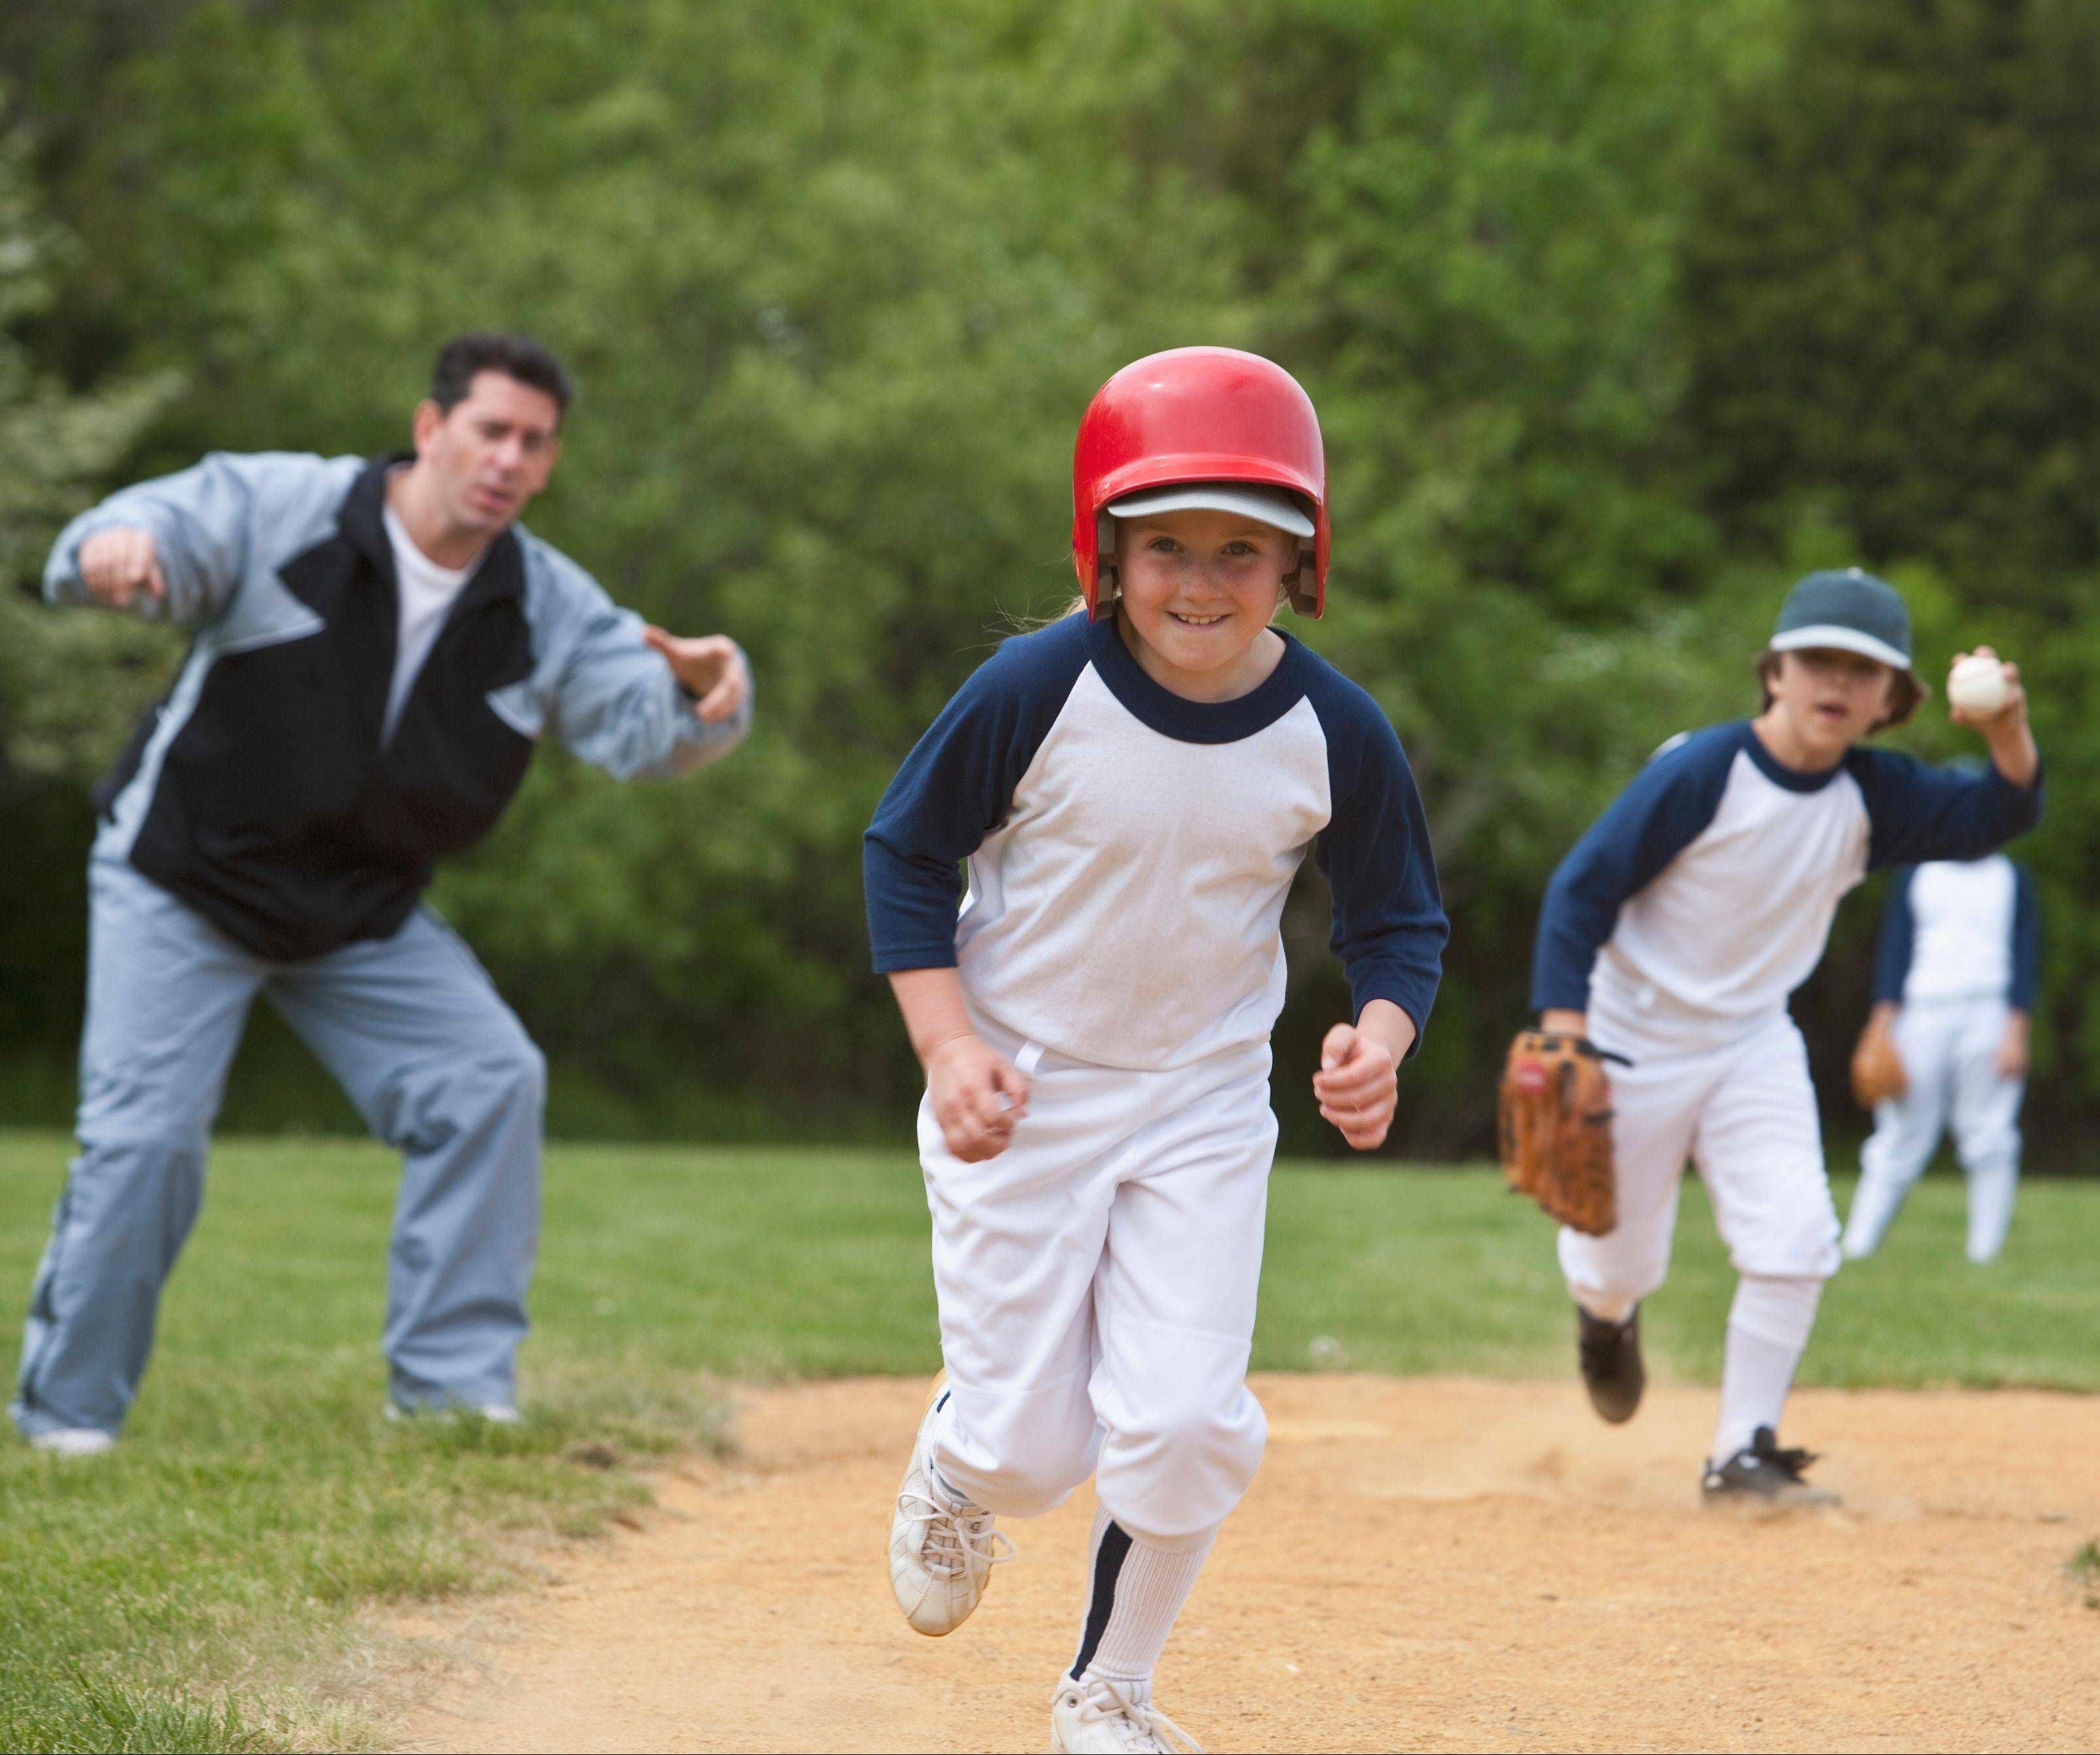 For a parent wondering if their child should take the leap from their local park district recreational team to a travel team, the options can be overwhelming.